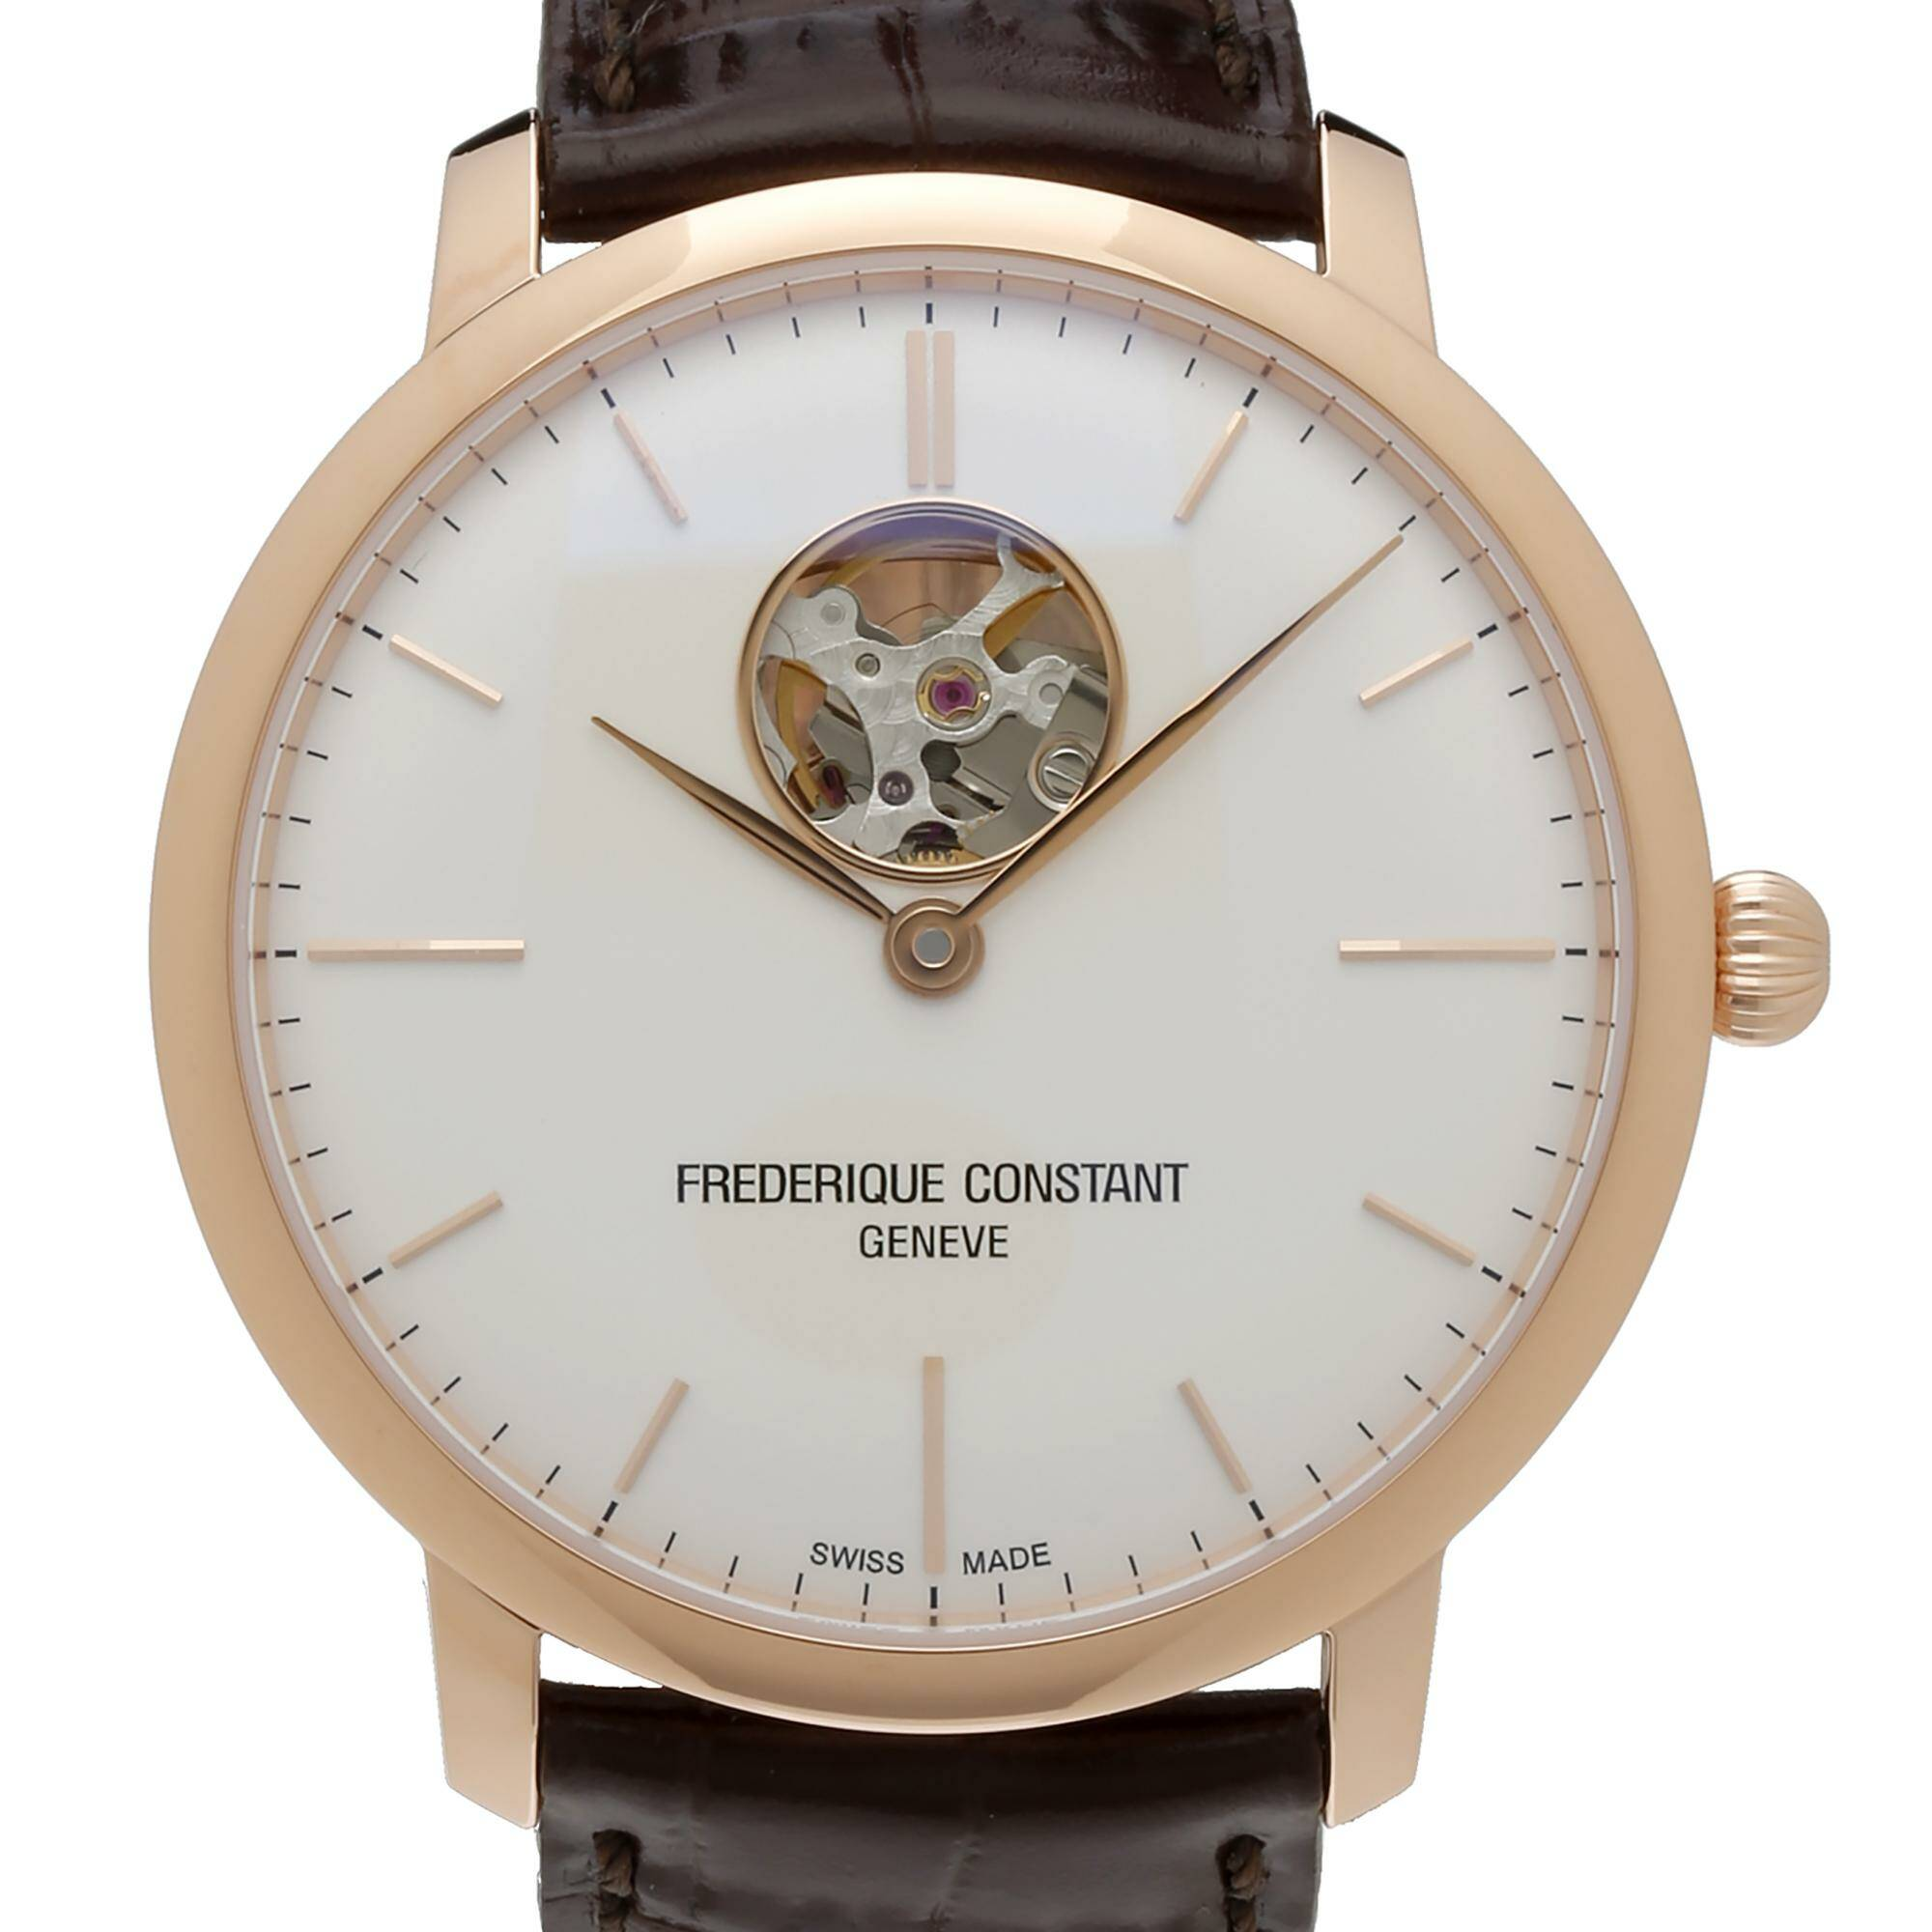 [FREDERIQUE CONSTANT] SLIMLINE AUTOMATIC HEATBEAT